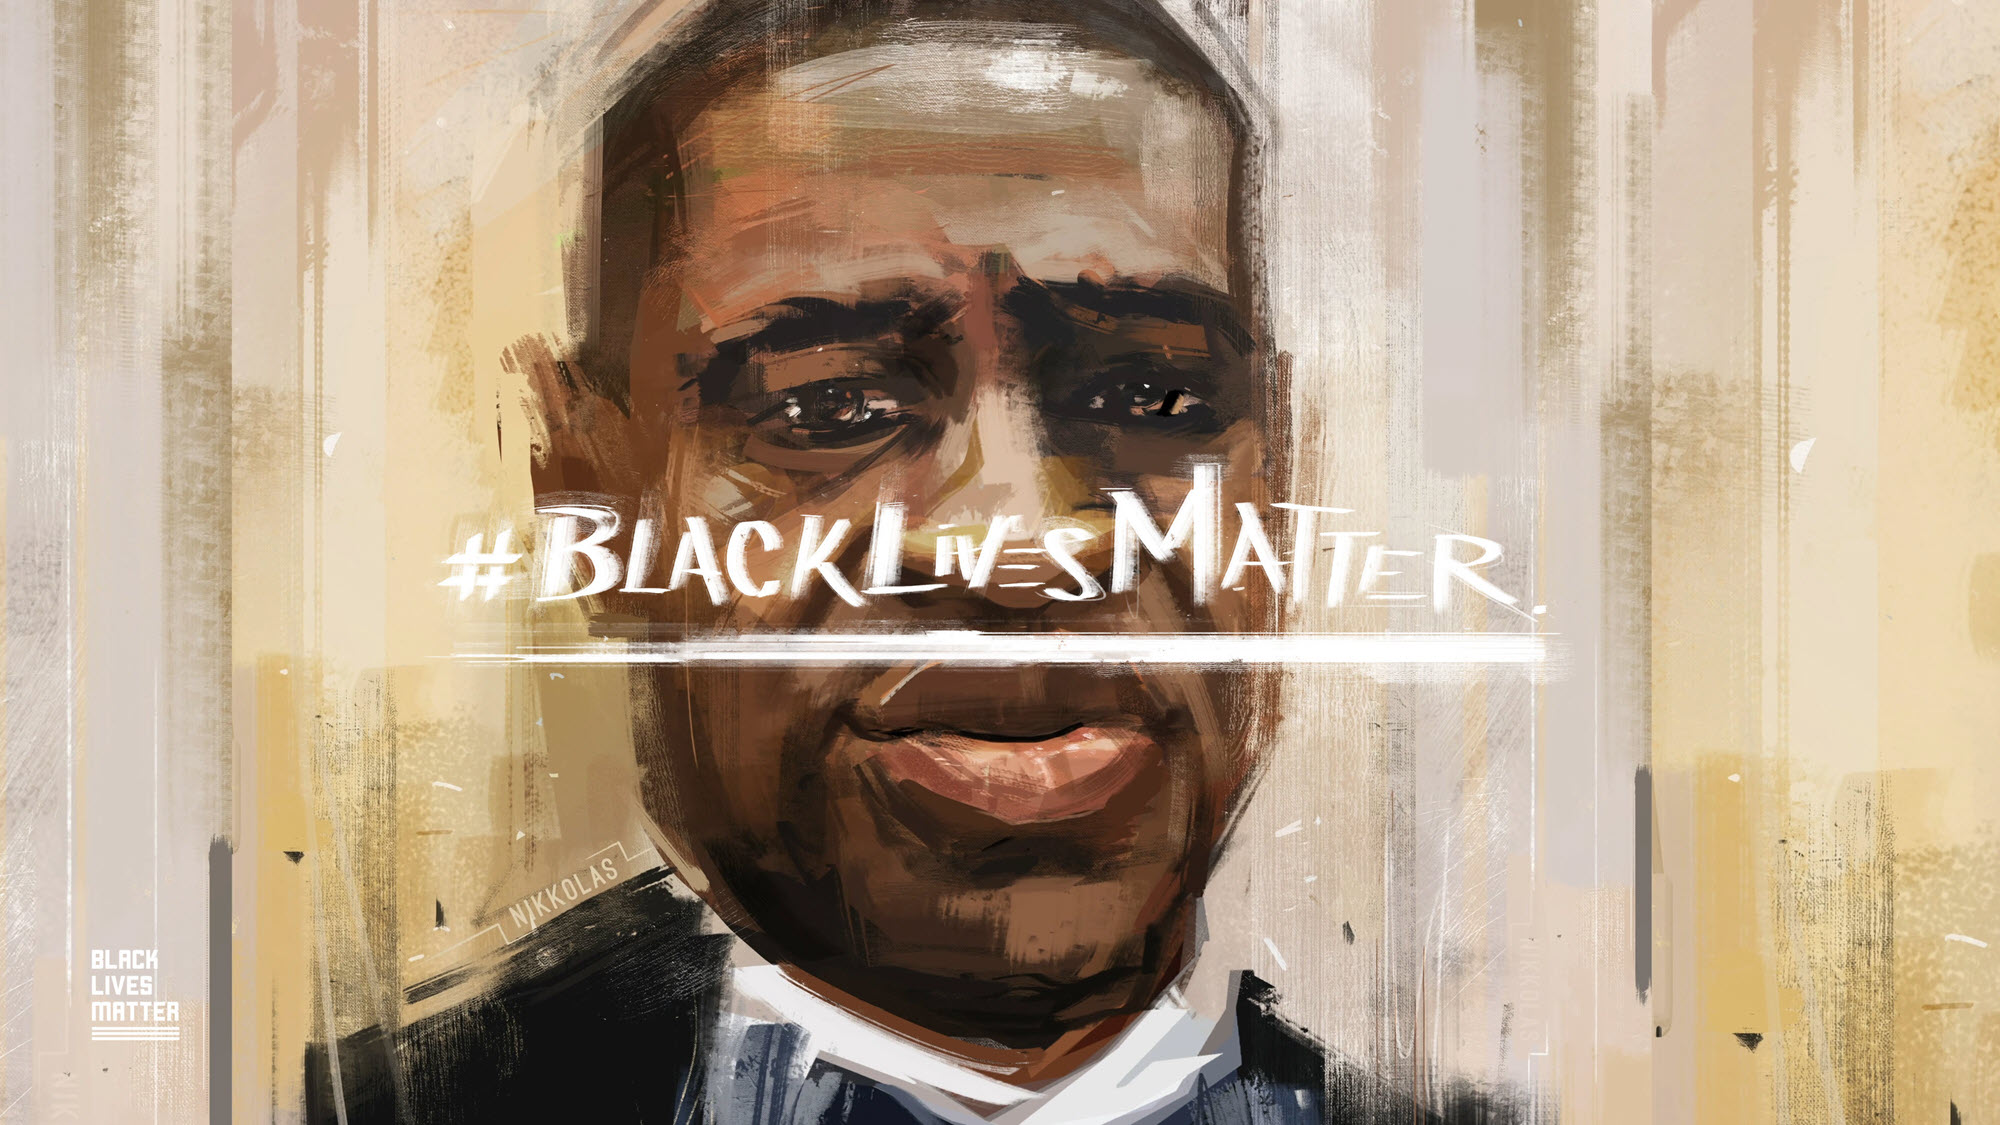 Black lives matter George Floyd photo